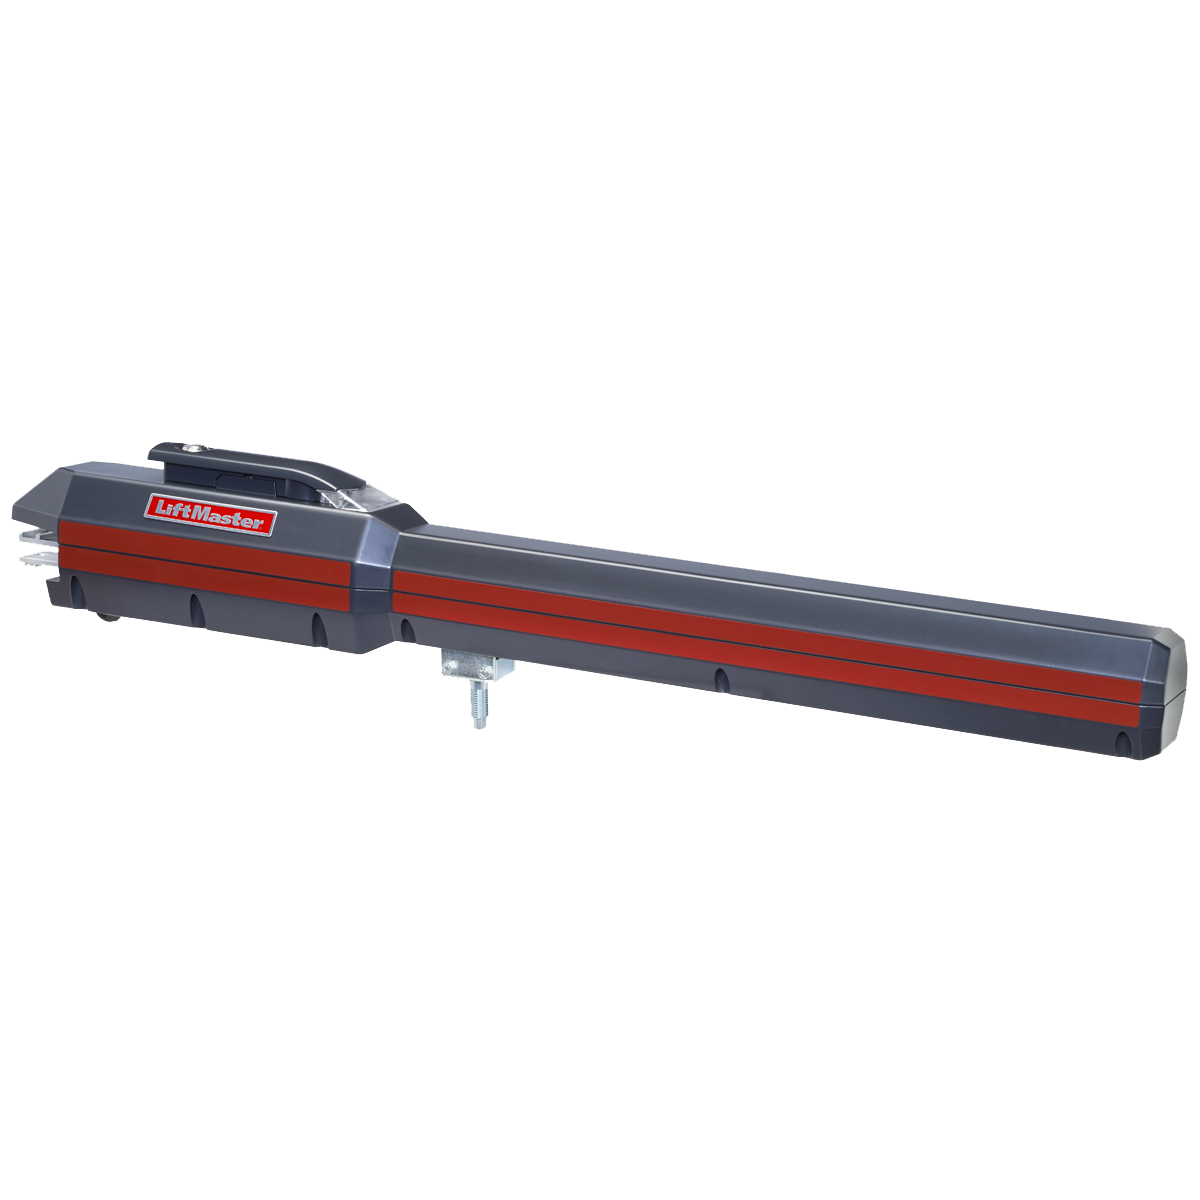 Liftmaster la swing gate operator linear actuator